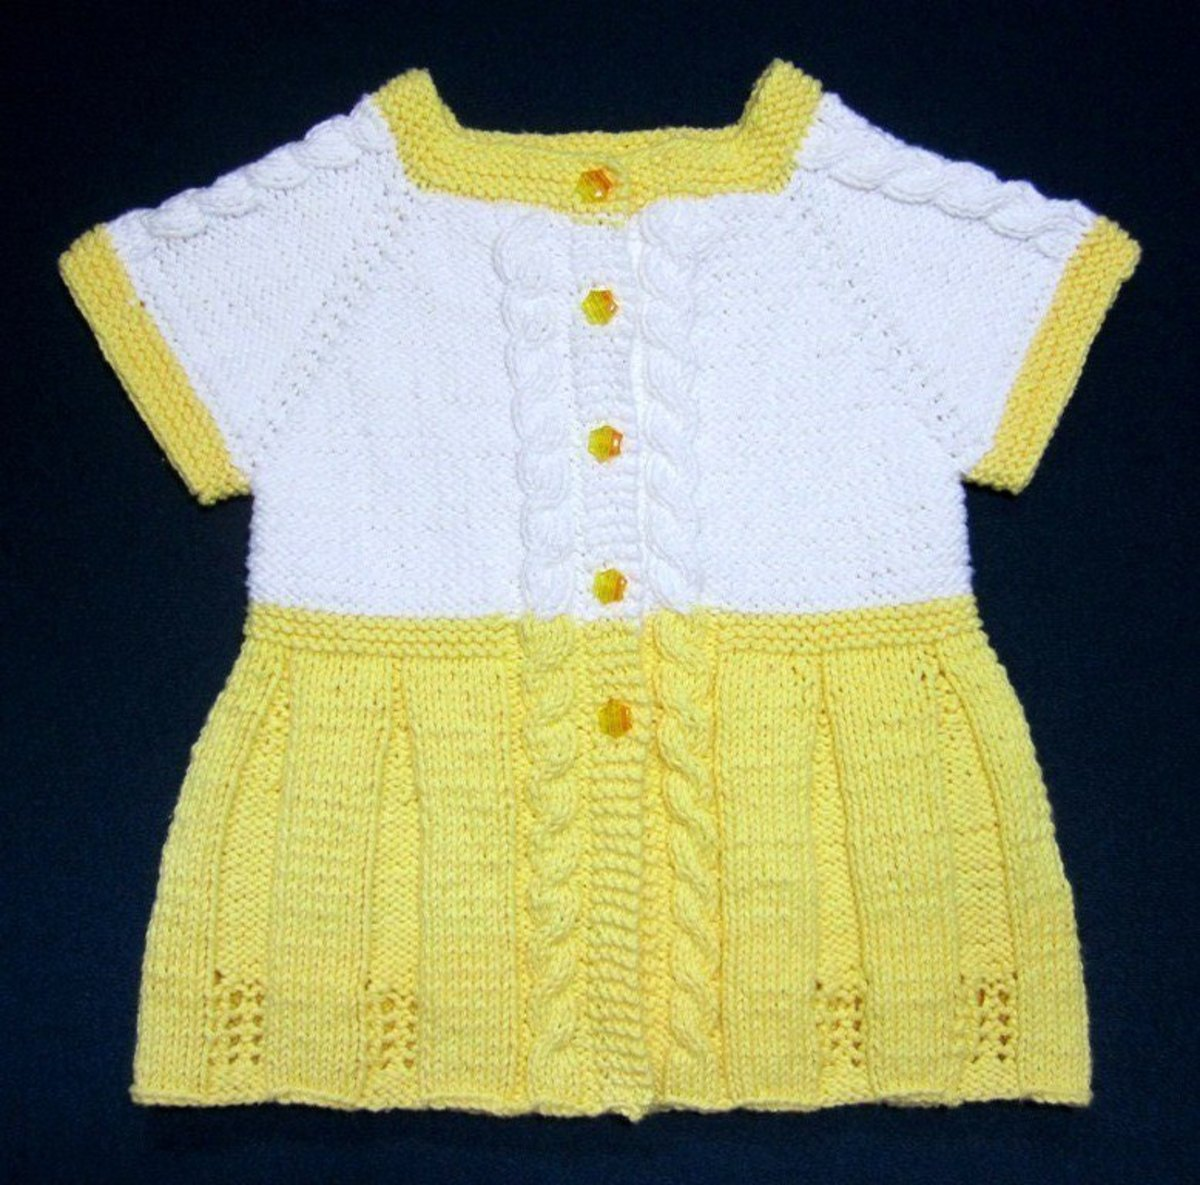 Seamless Yellow Baby Sweater Dress. Free Knitting Pattern! hubpages